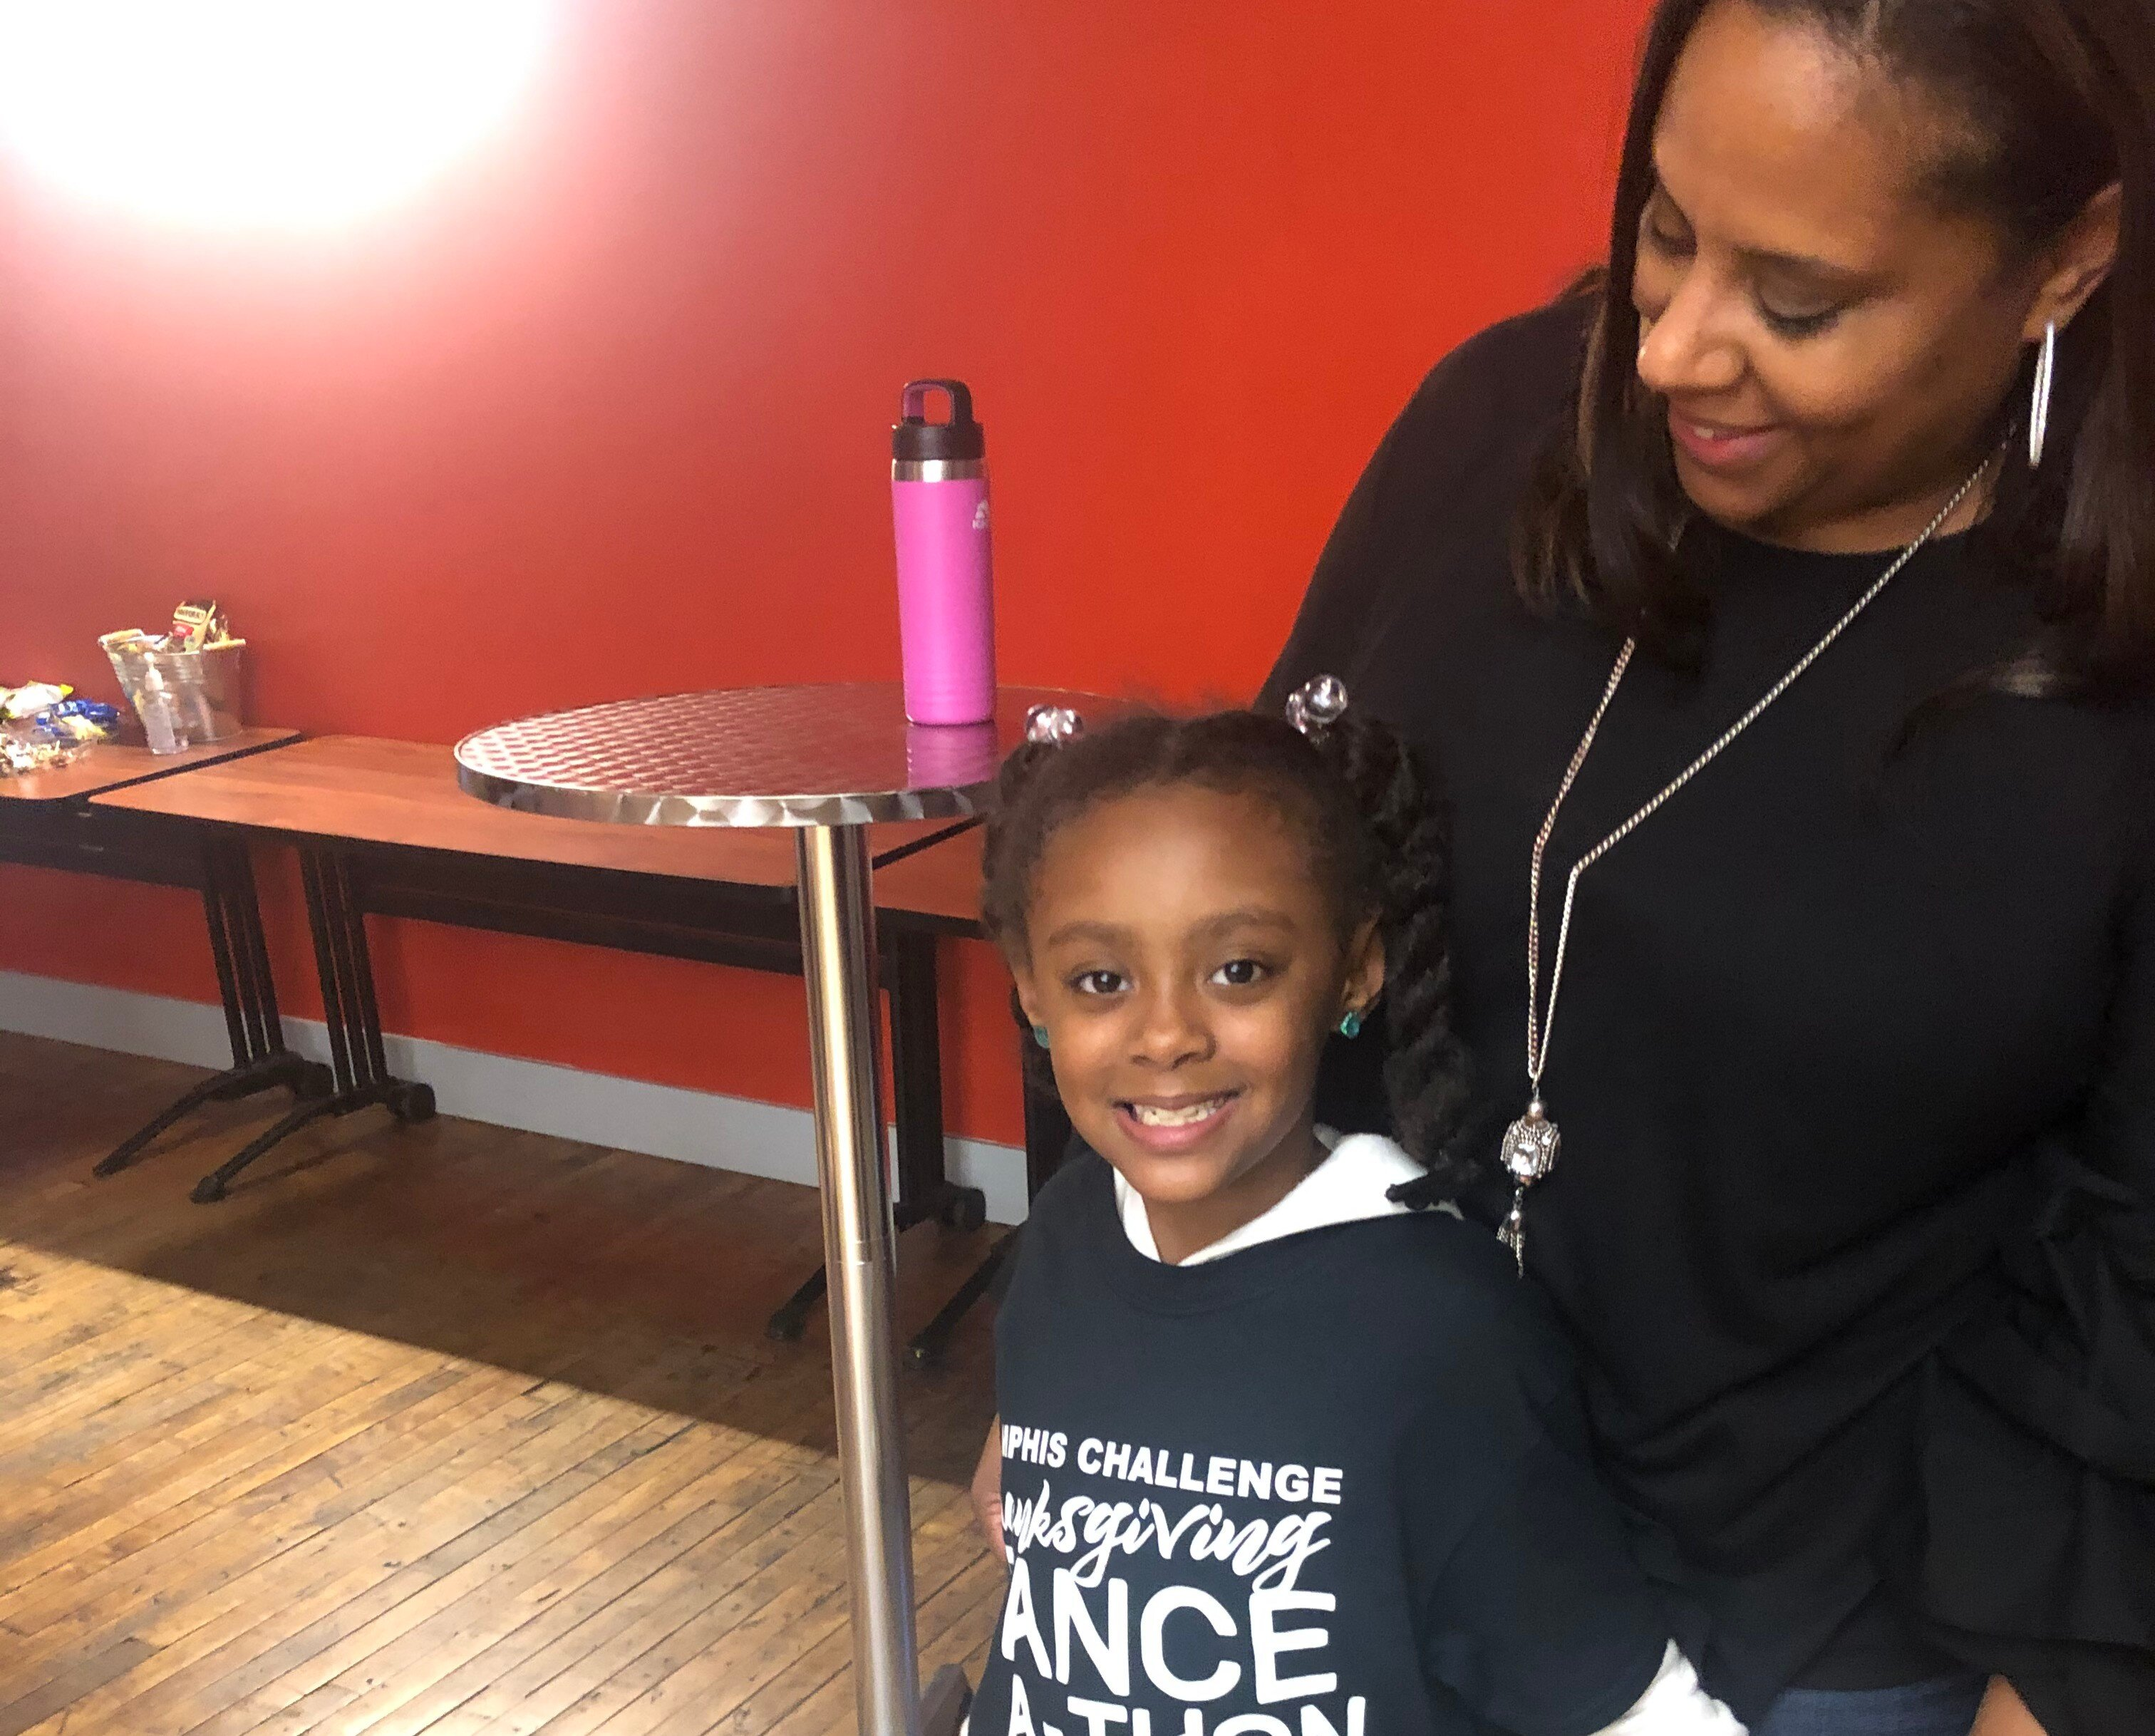 Dr. Angela Anderson,  Memphis Challenge facilitator, with her daughter, Alex Anderson. Alex is a Schilling Farms Elementary student and future Memphis Challenger. She danced alongside the older kid at the Dance-A-Thon. (Memphis Challenge)